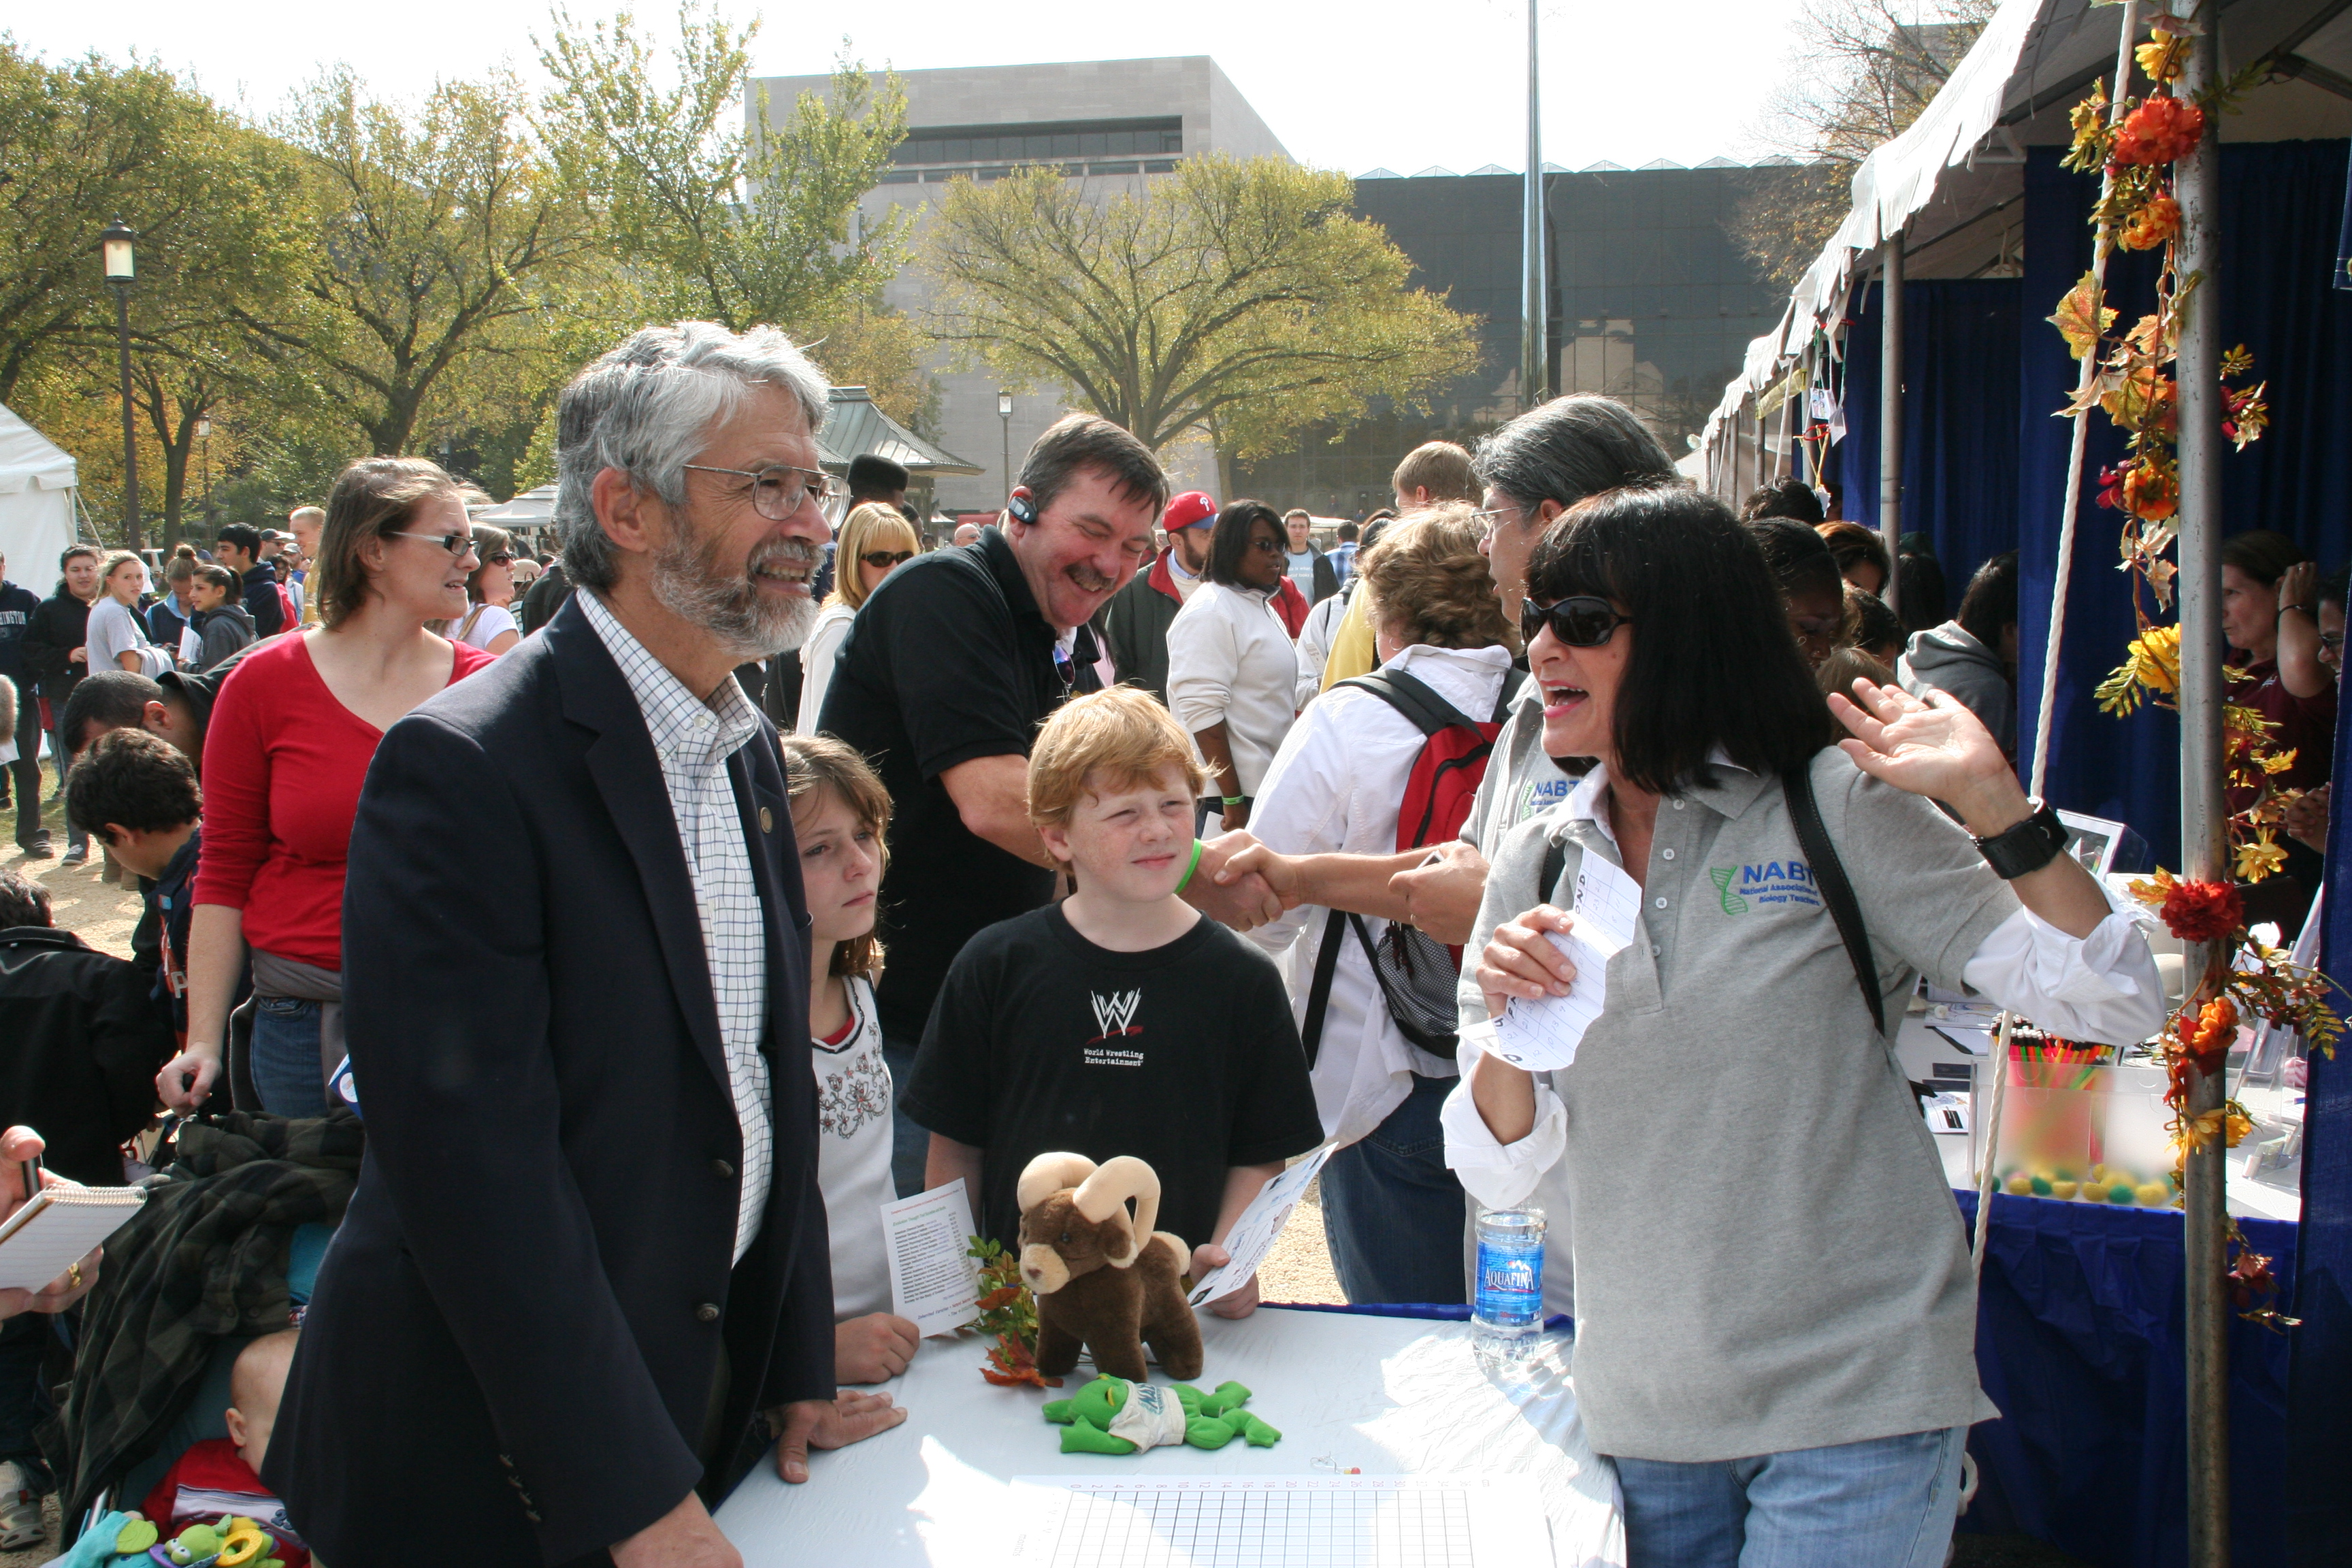 Dr. Holdren at USA Science and Engineering Festival 10